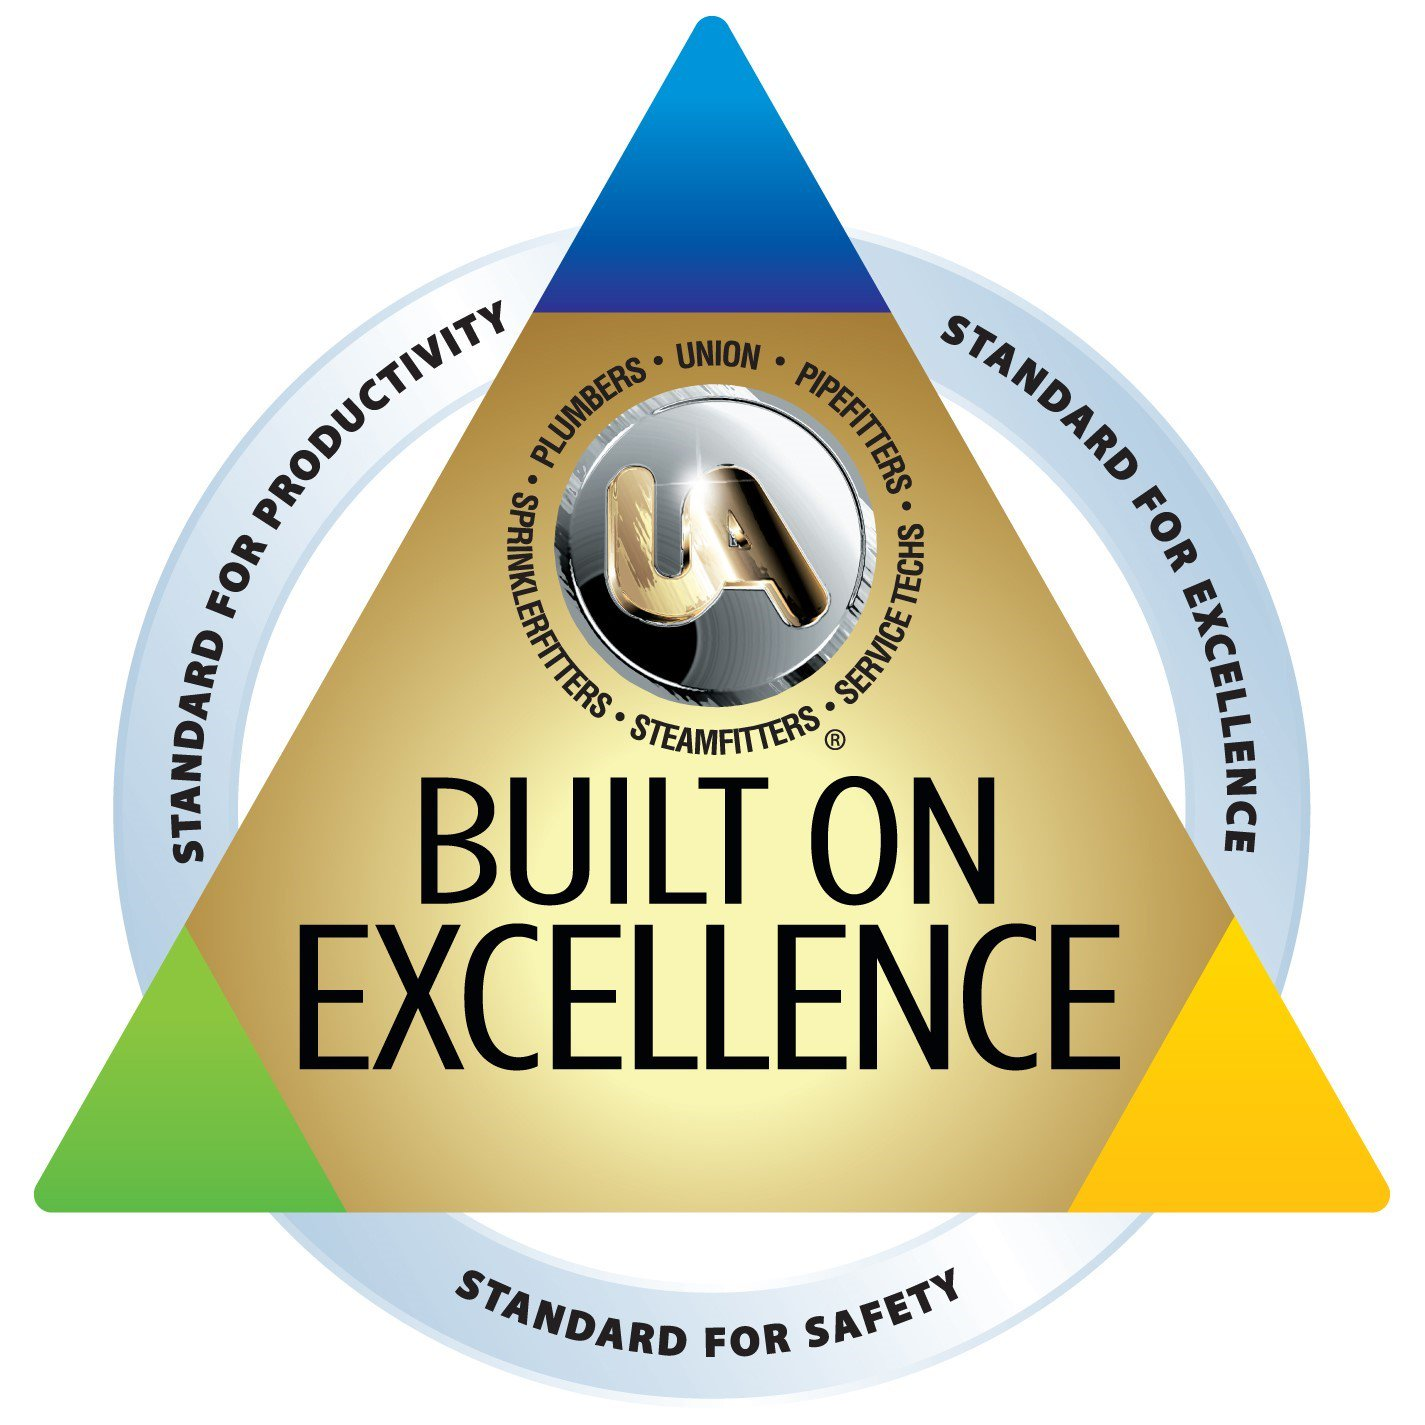 Built on Excellence